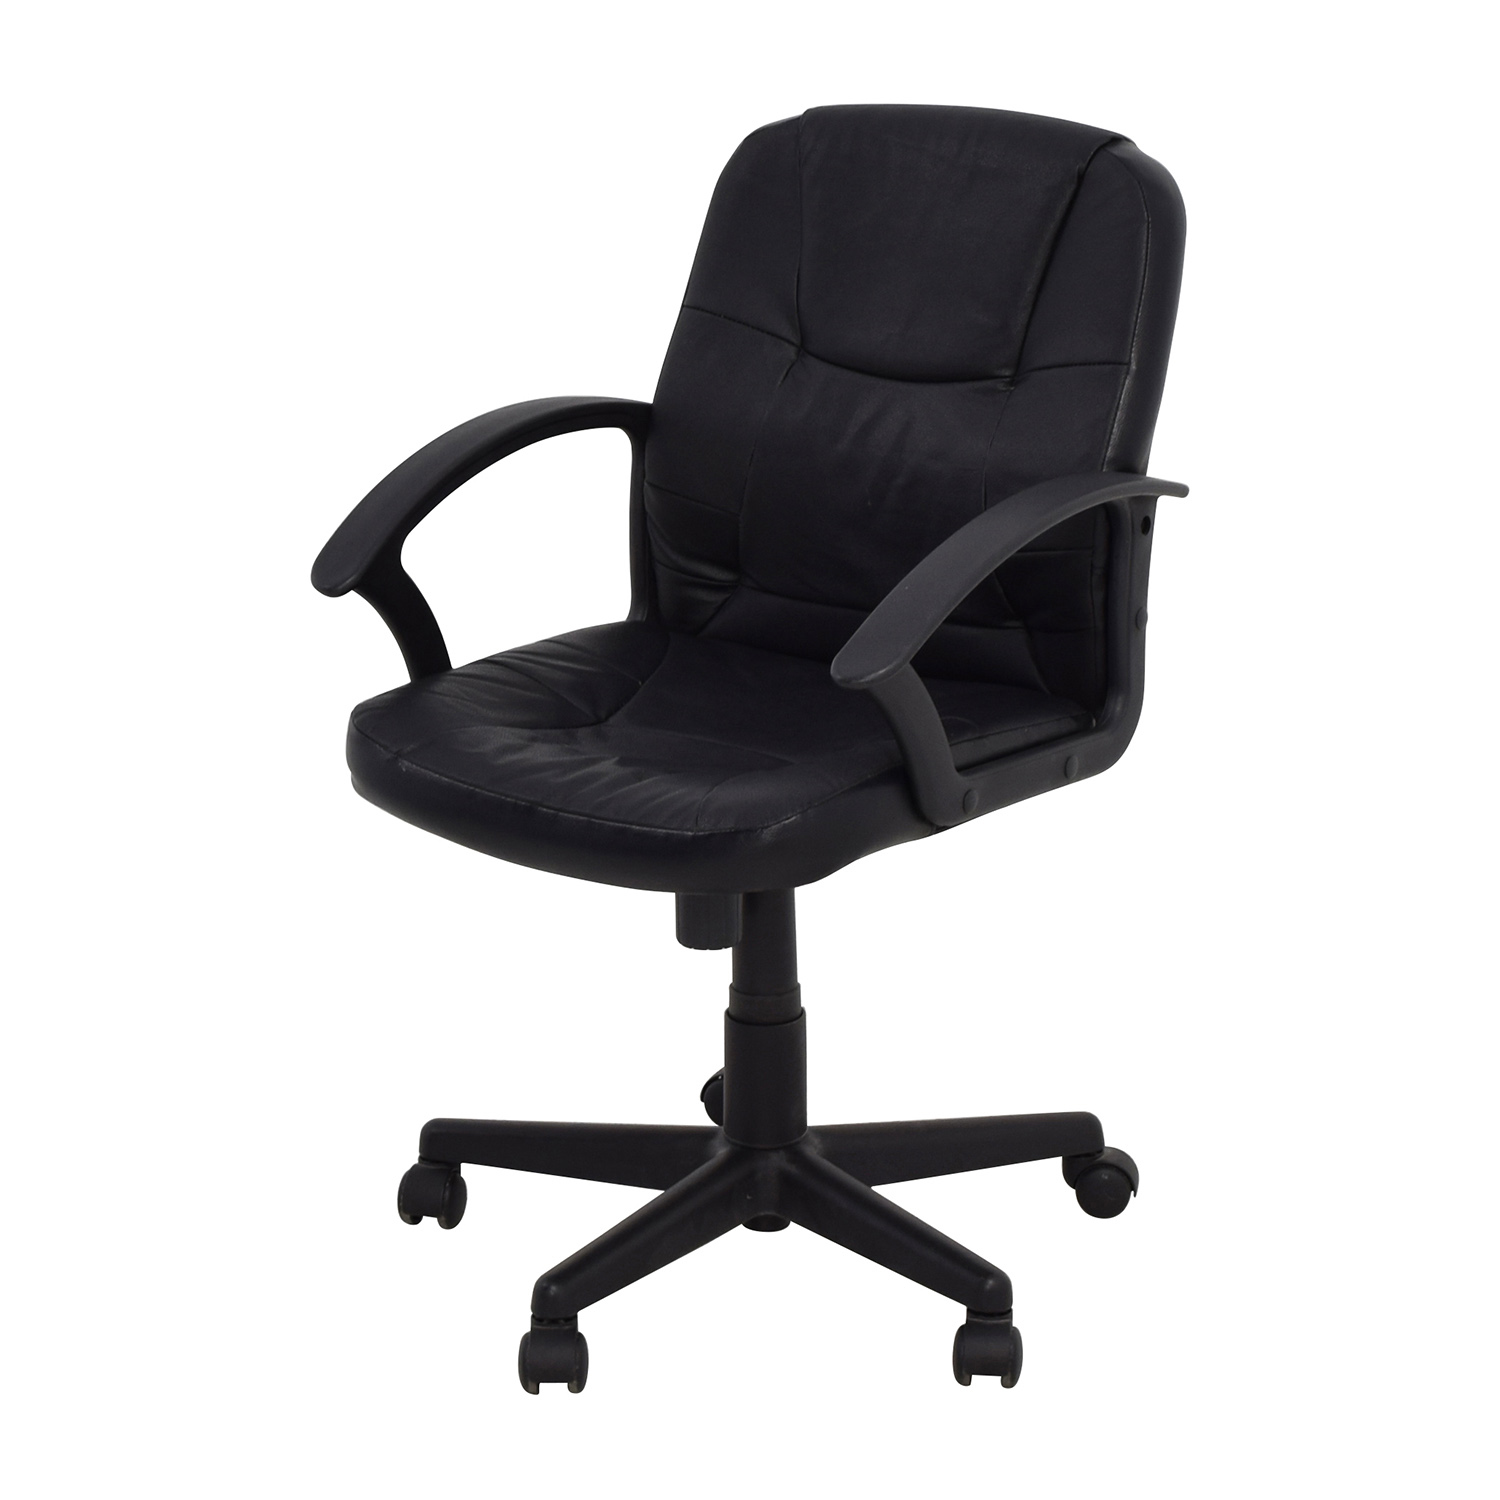 Furniture Chairs Black 75 Off Black Leather Adjustable Desk Chair Chairs